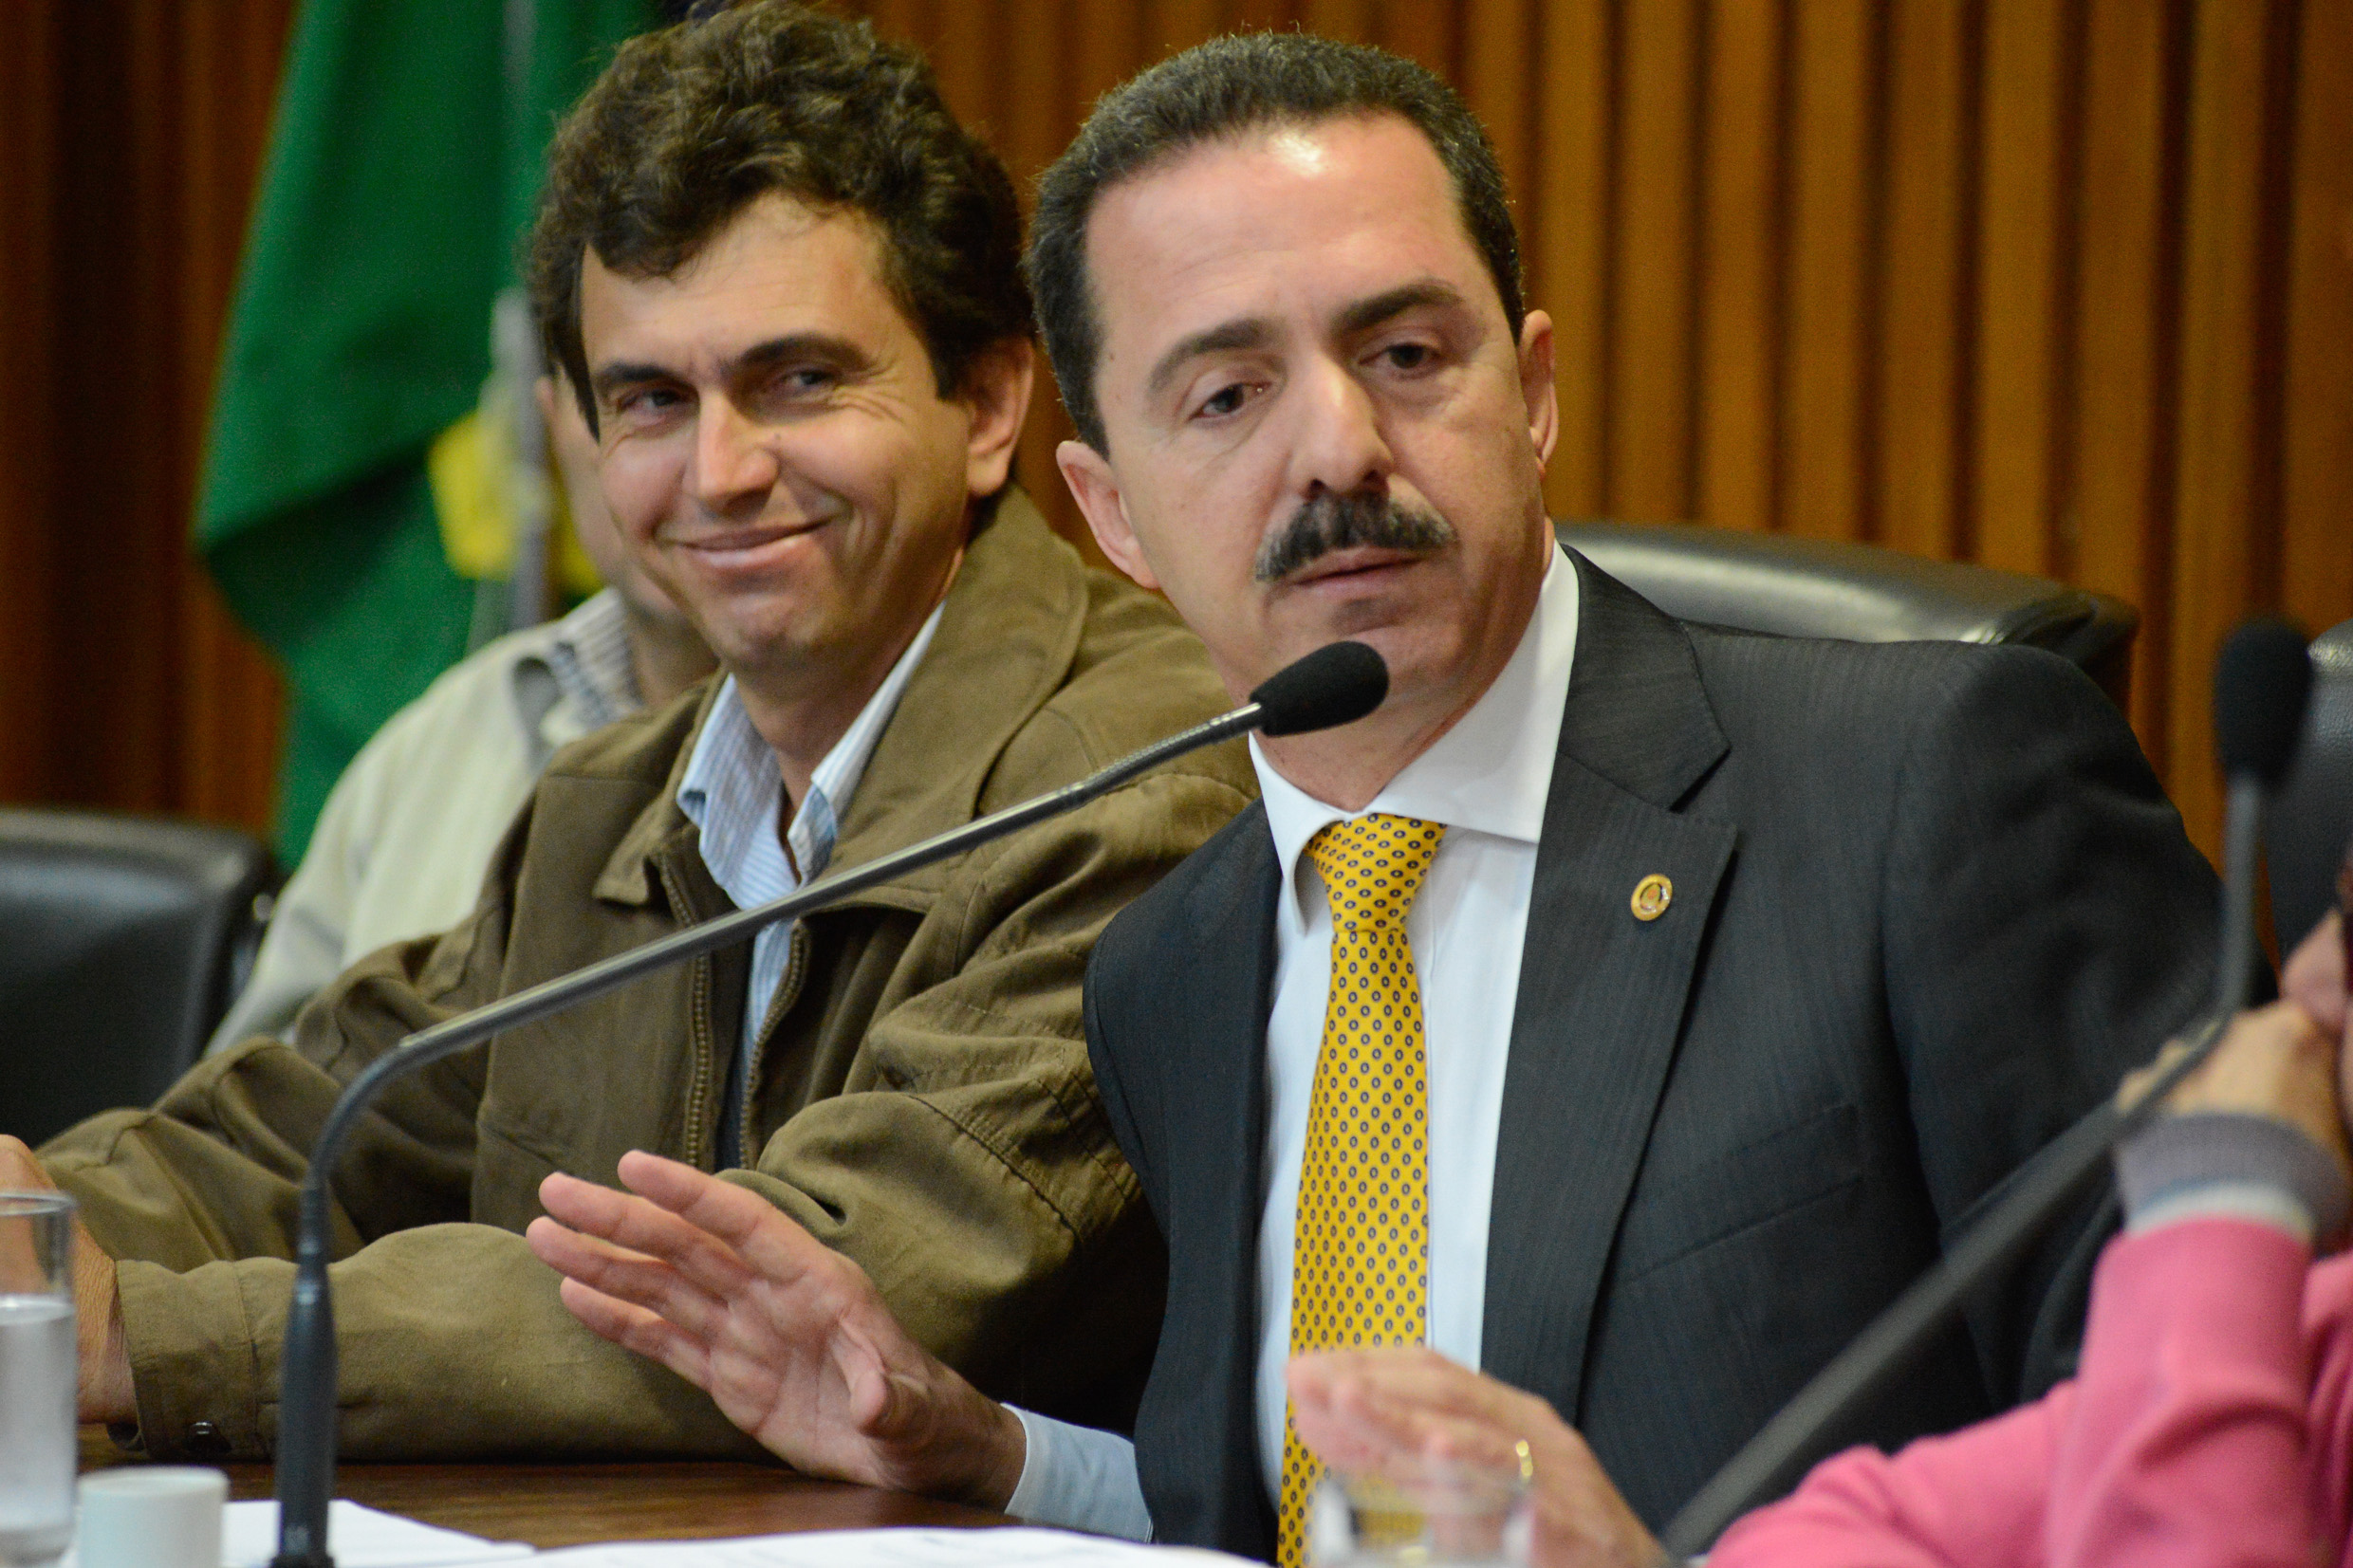 Itamar Borges ao microfone <a style='float:right' href='https://www3.al.sp.gov.br/repositorio/noticia/N-06-2016/fg192232.jpg' target=_blank><img src='/_img/material-file-download-white.png' width='14px' alt='Clique para baixar a imagem'></a>